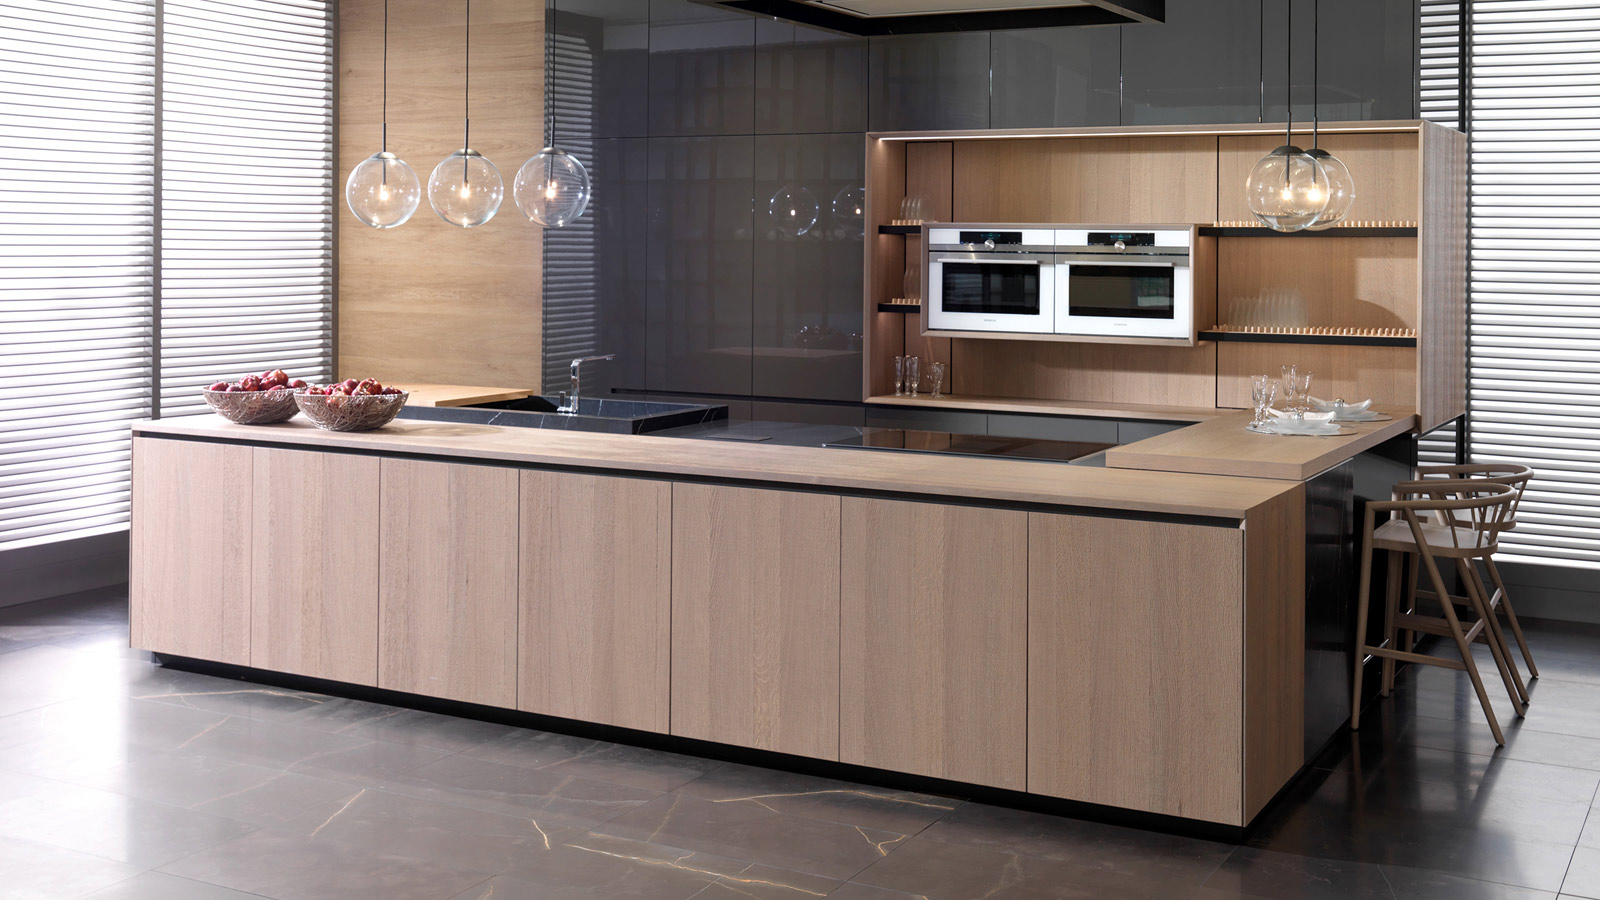 Gamadecor Kitchens: quality guaranteed